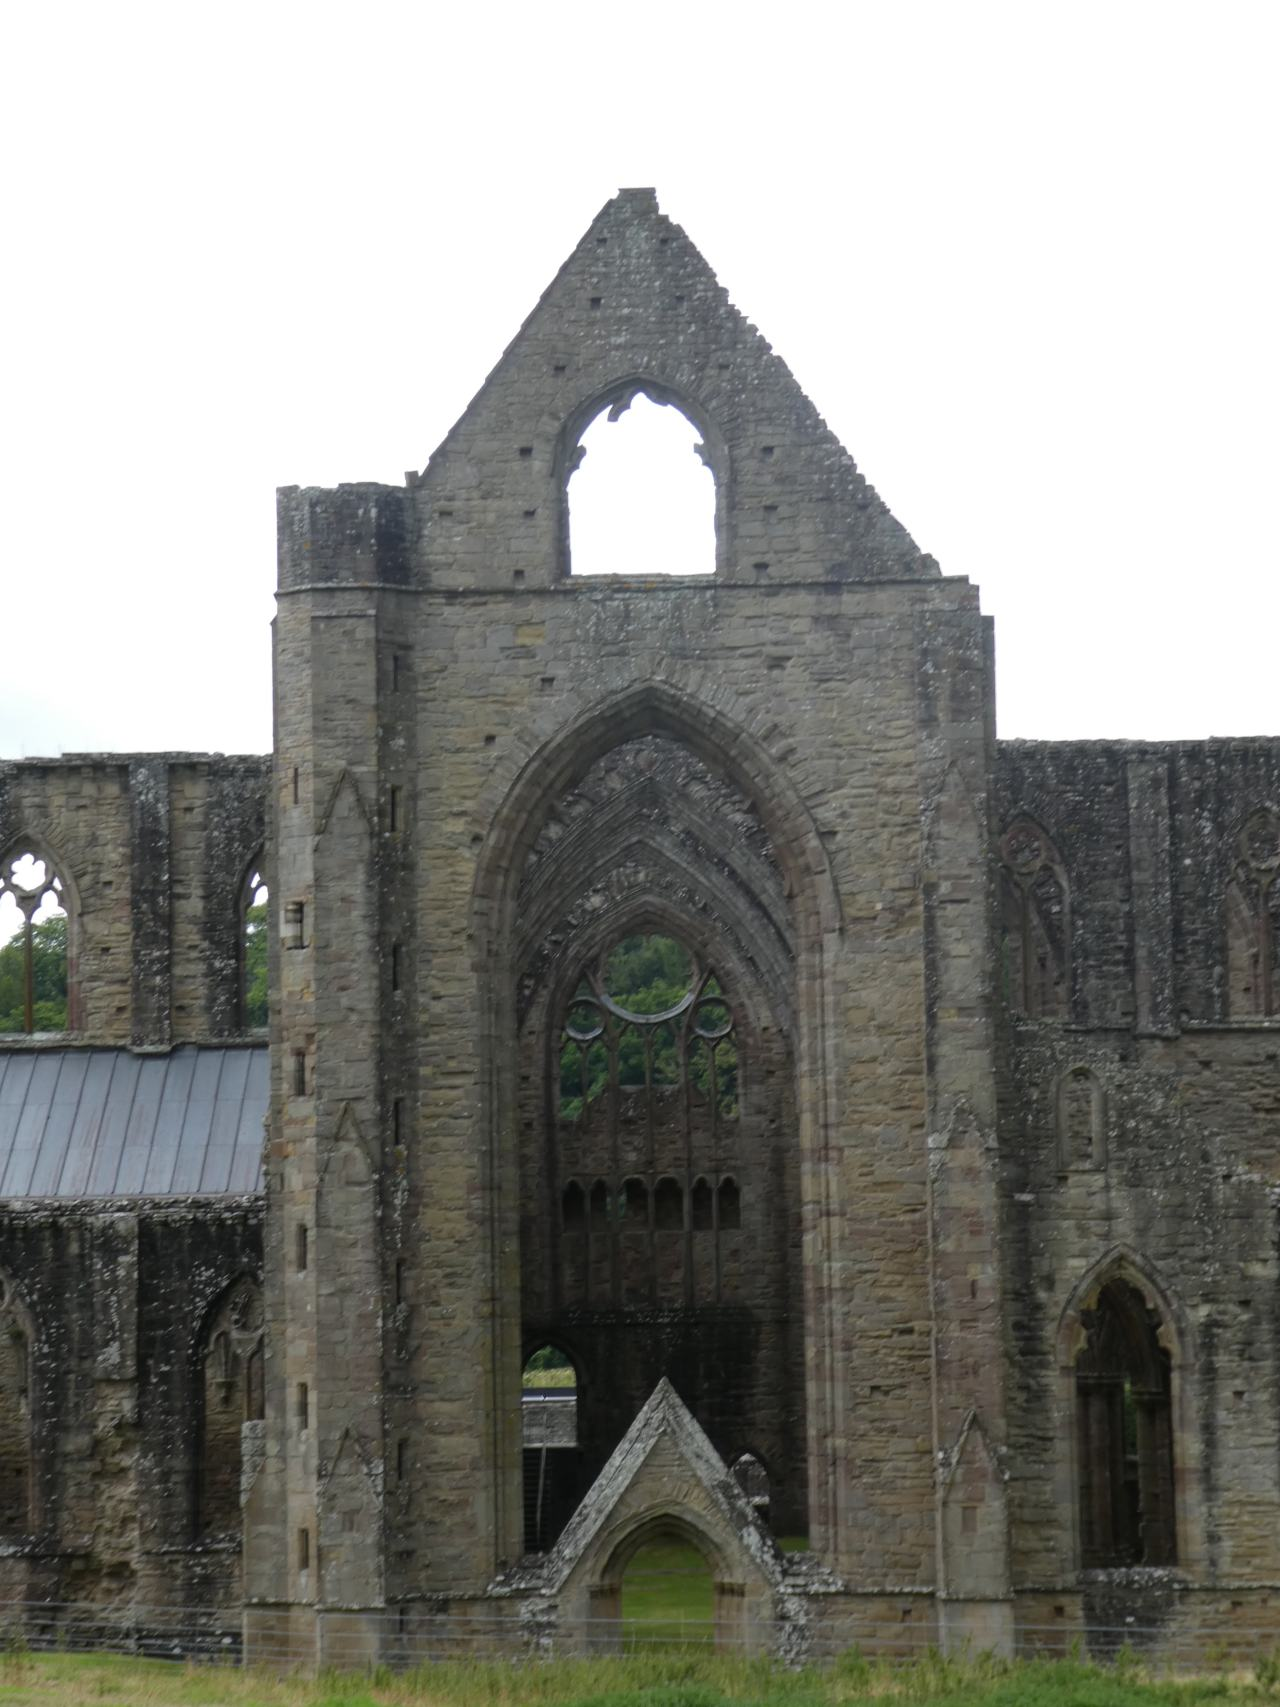 Tintern Abbey arches